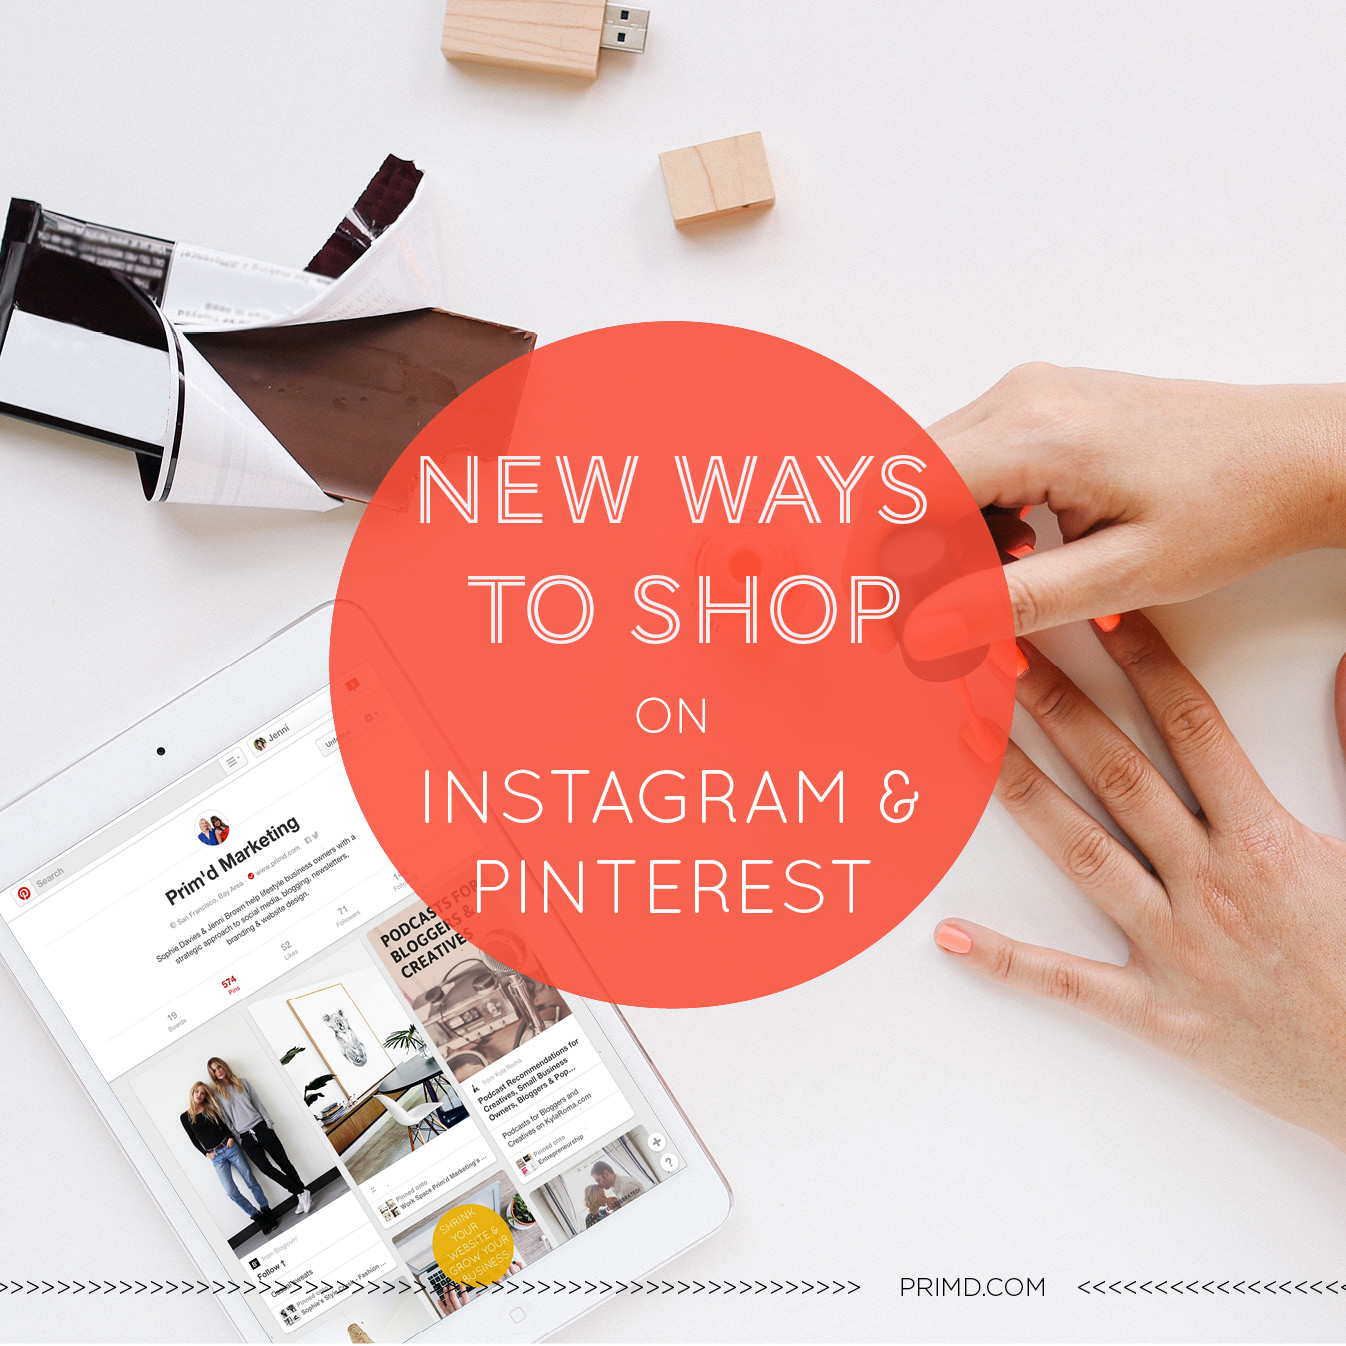 New Ways To Shop On Instagram & Pinterest - Prim'd Blog